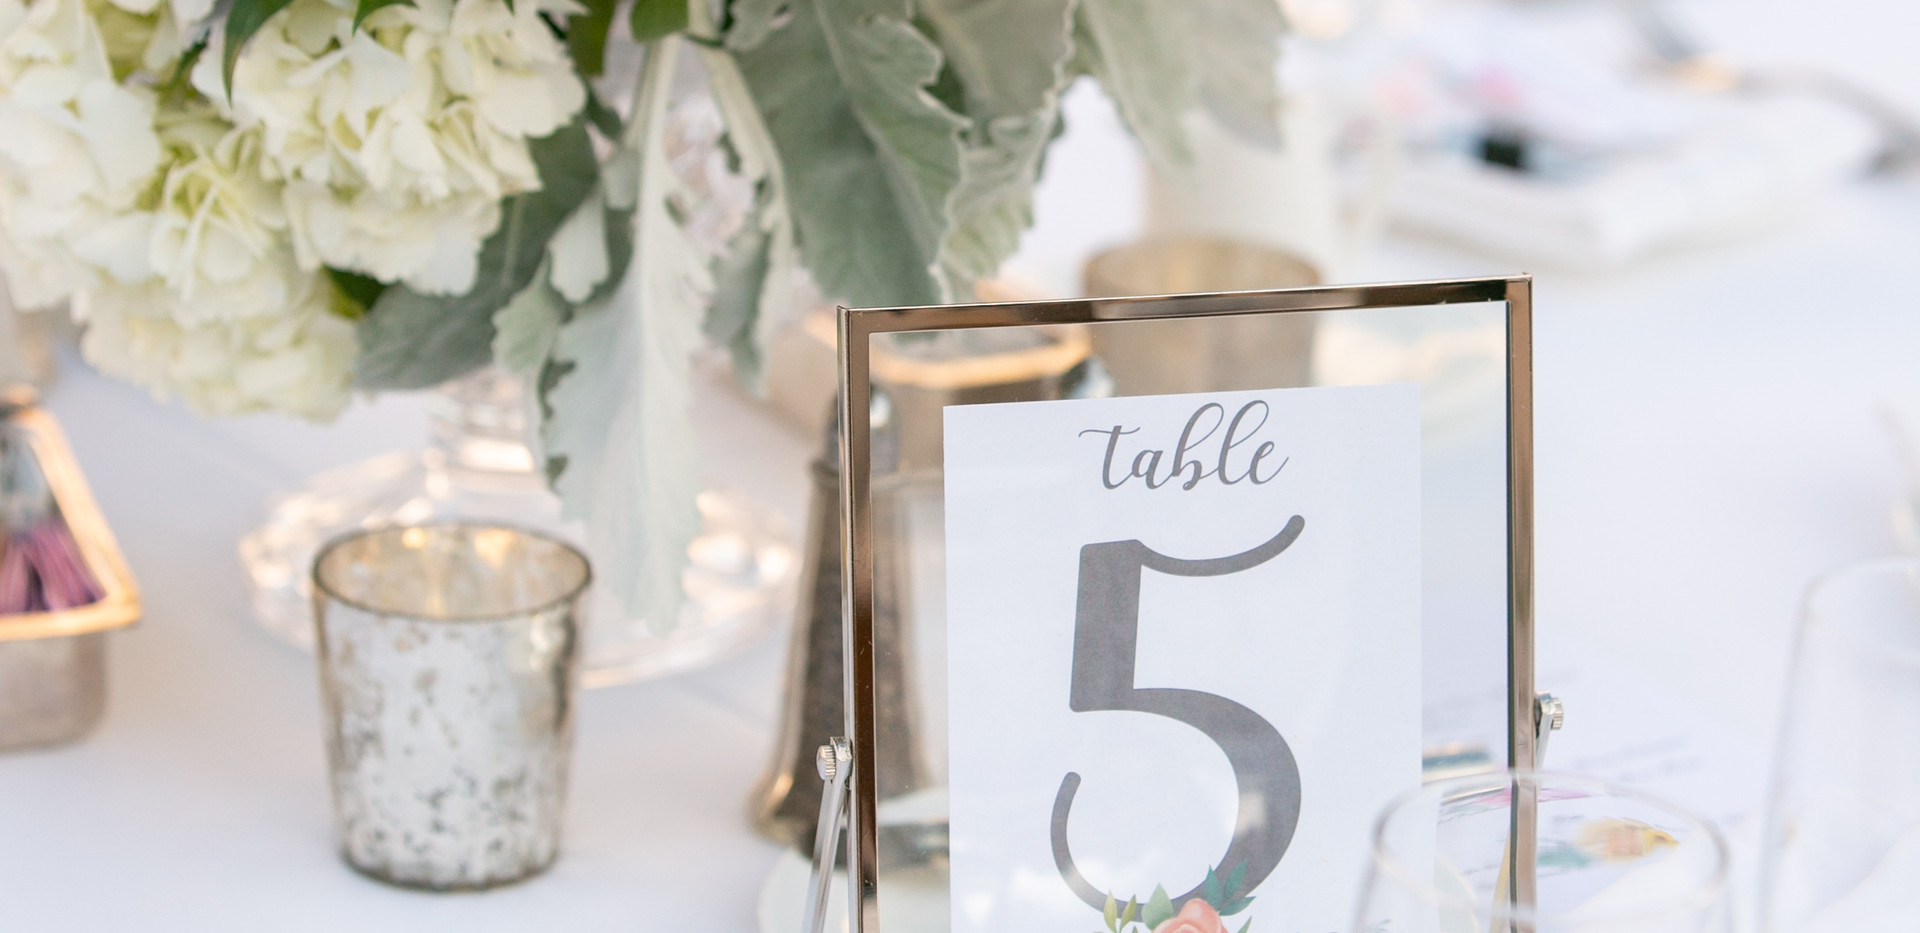 Pink and White Floral Centerpiece with Matching Table Numbers